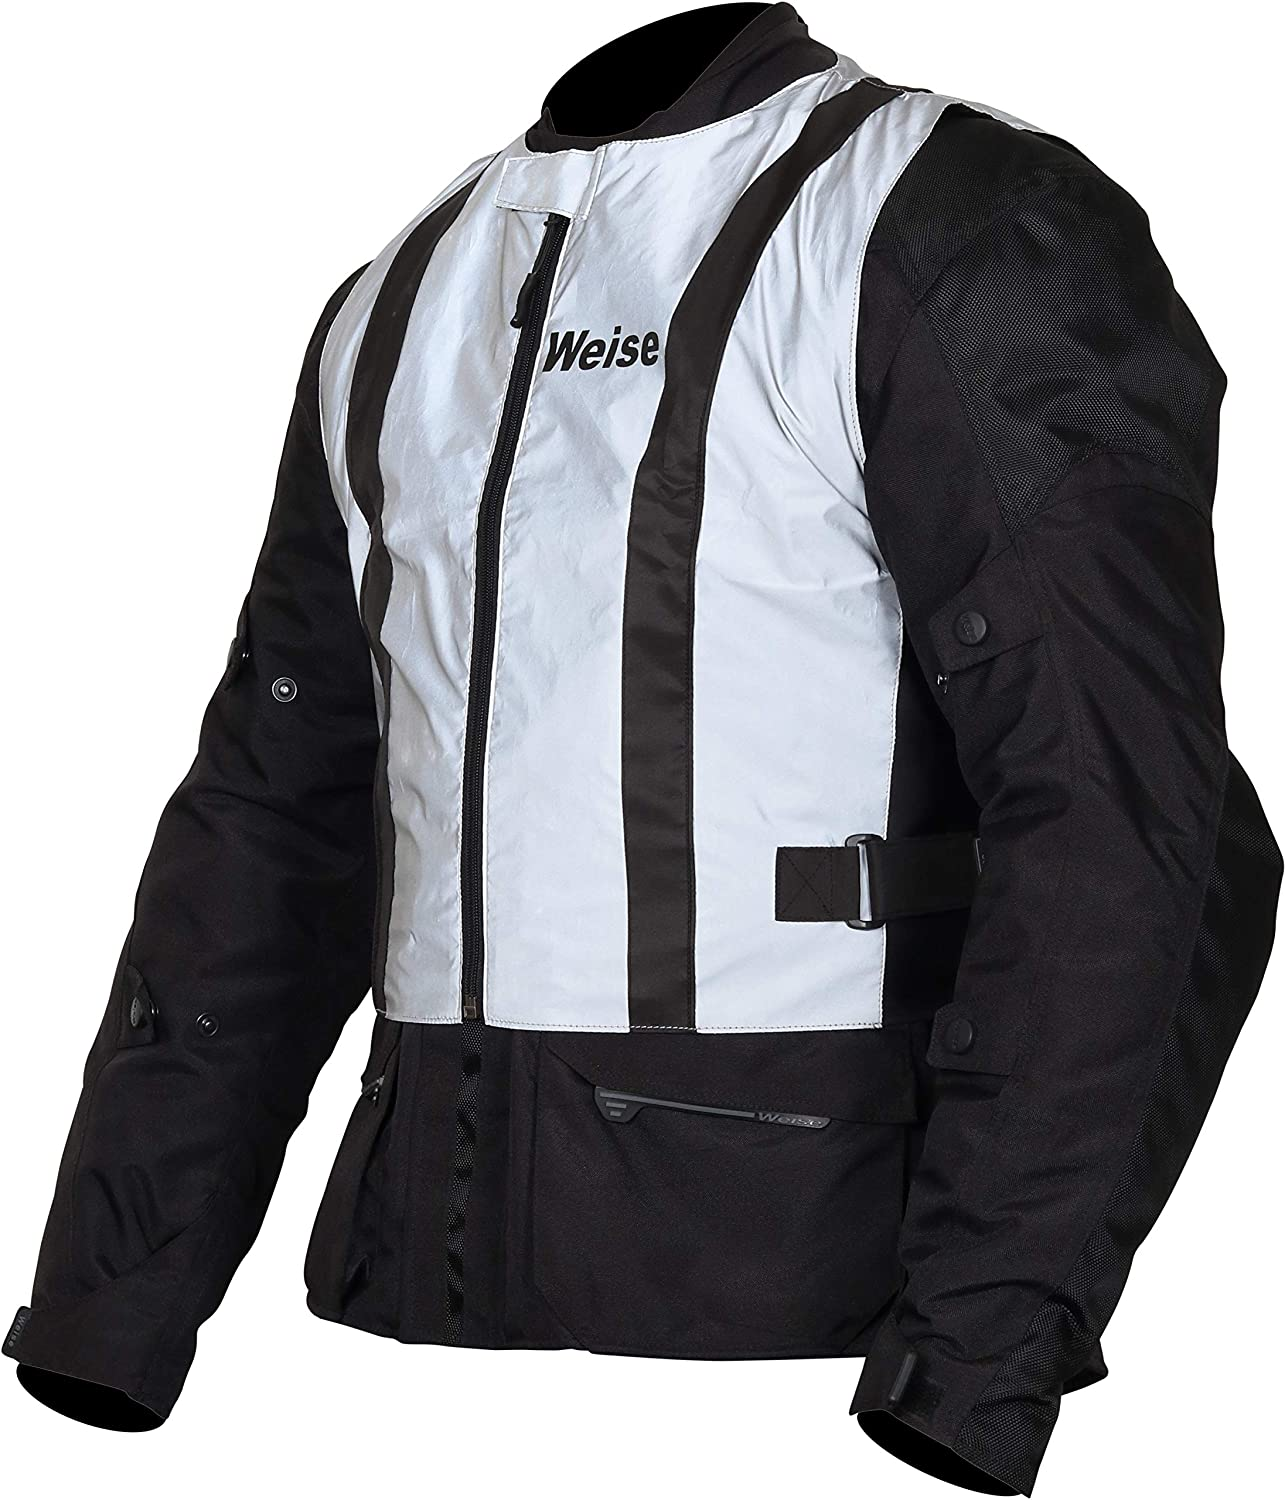 Size 2XL//3XL Weise Vision Gilet Silver